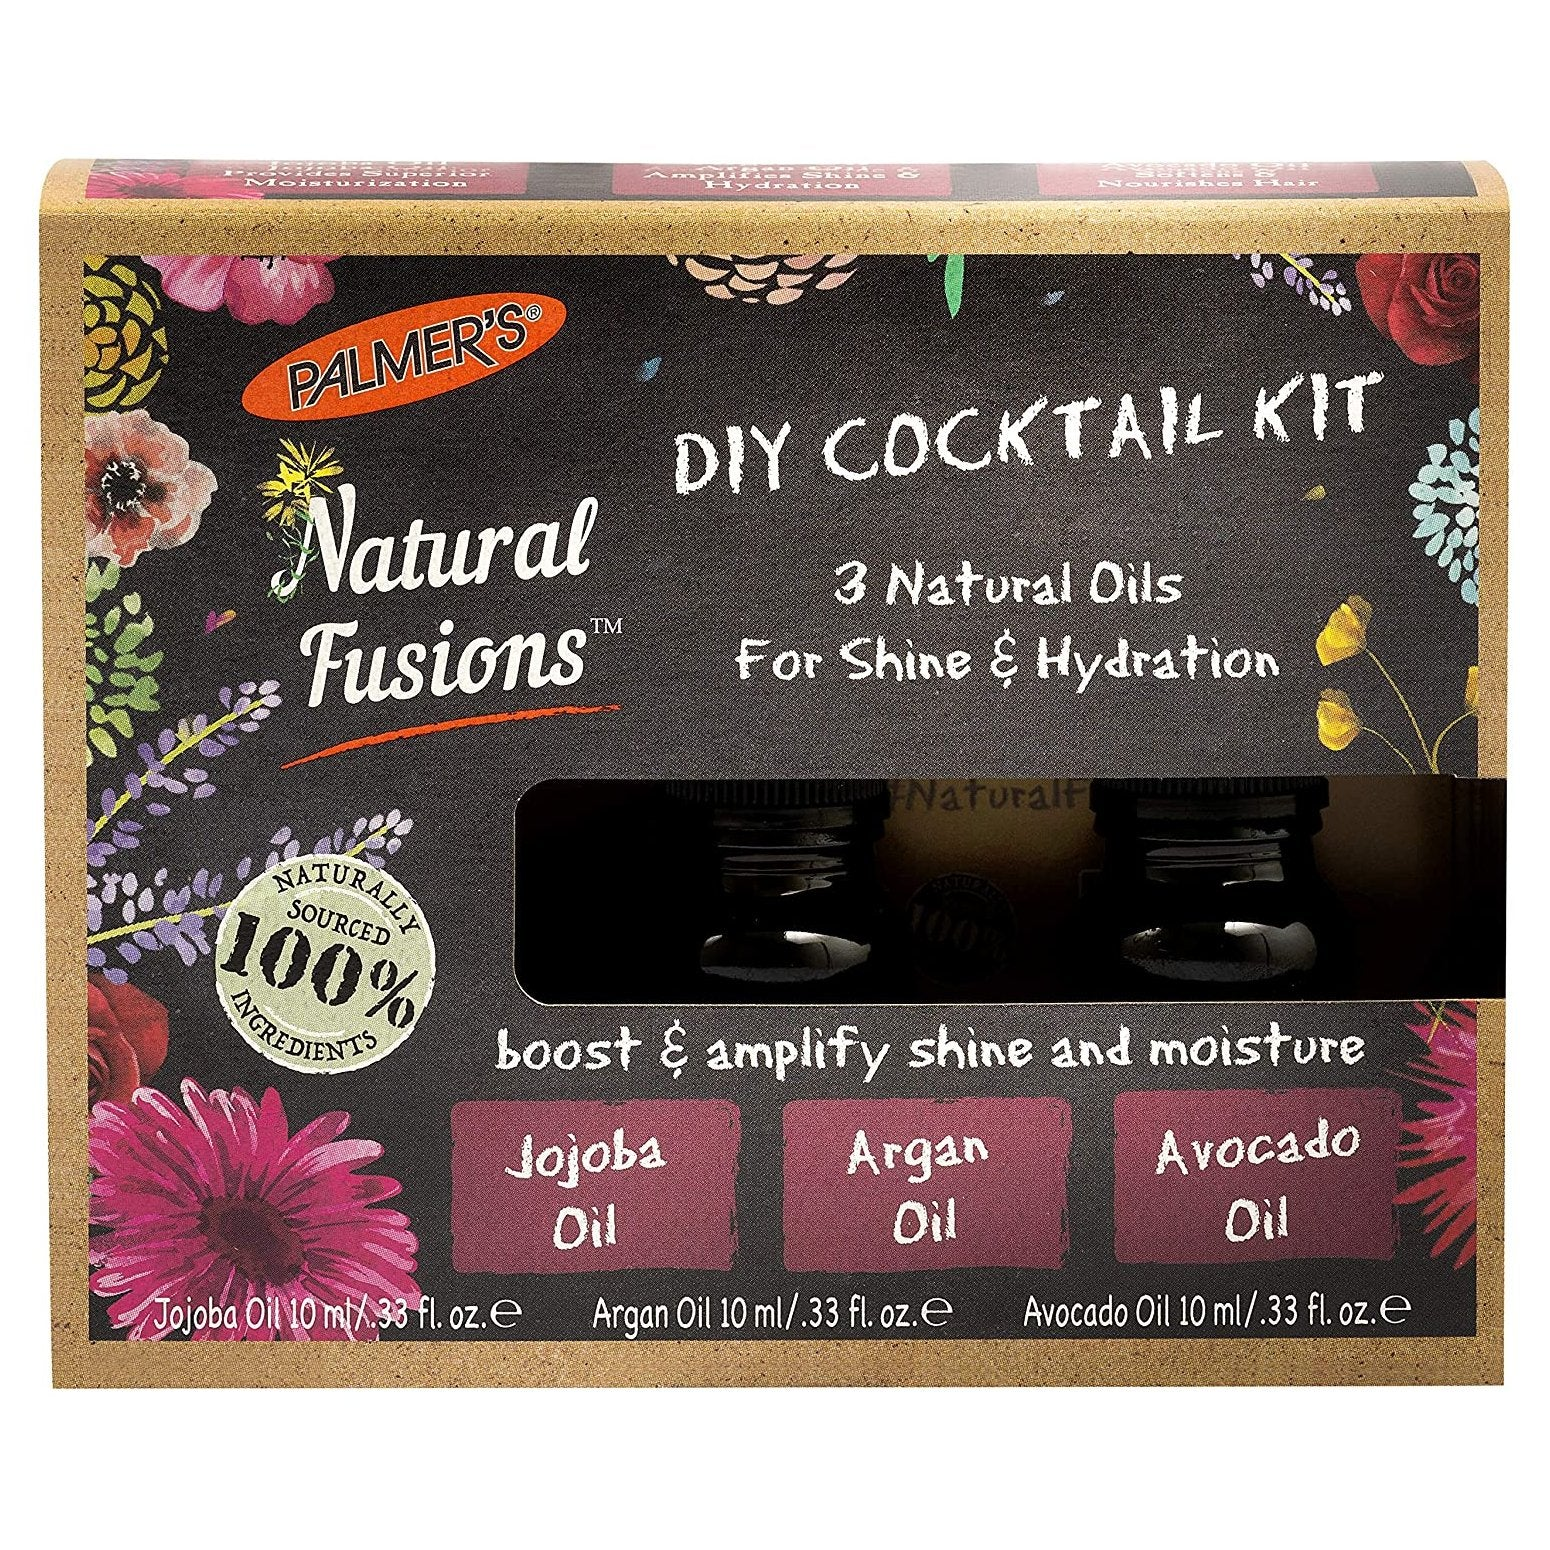 Palmer's Natural Fusions Diy Cocktail Kit 3 Natural Oils For Shine & Hydration Pk3 X 10ml